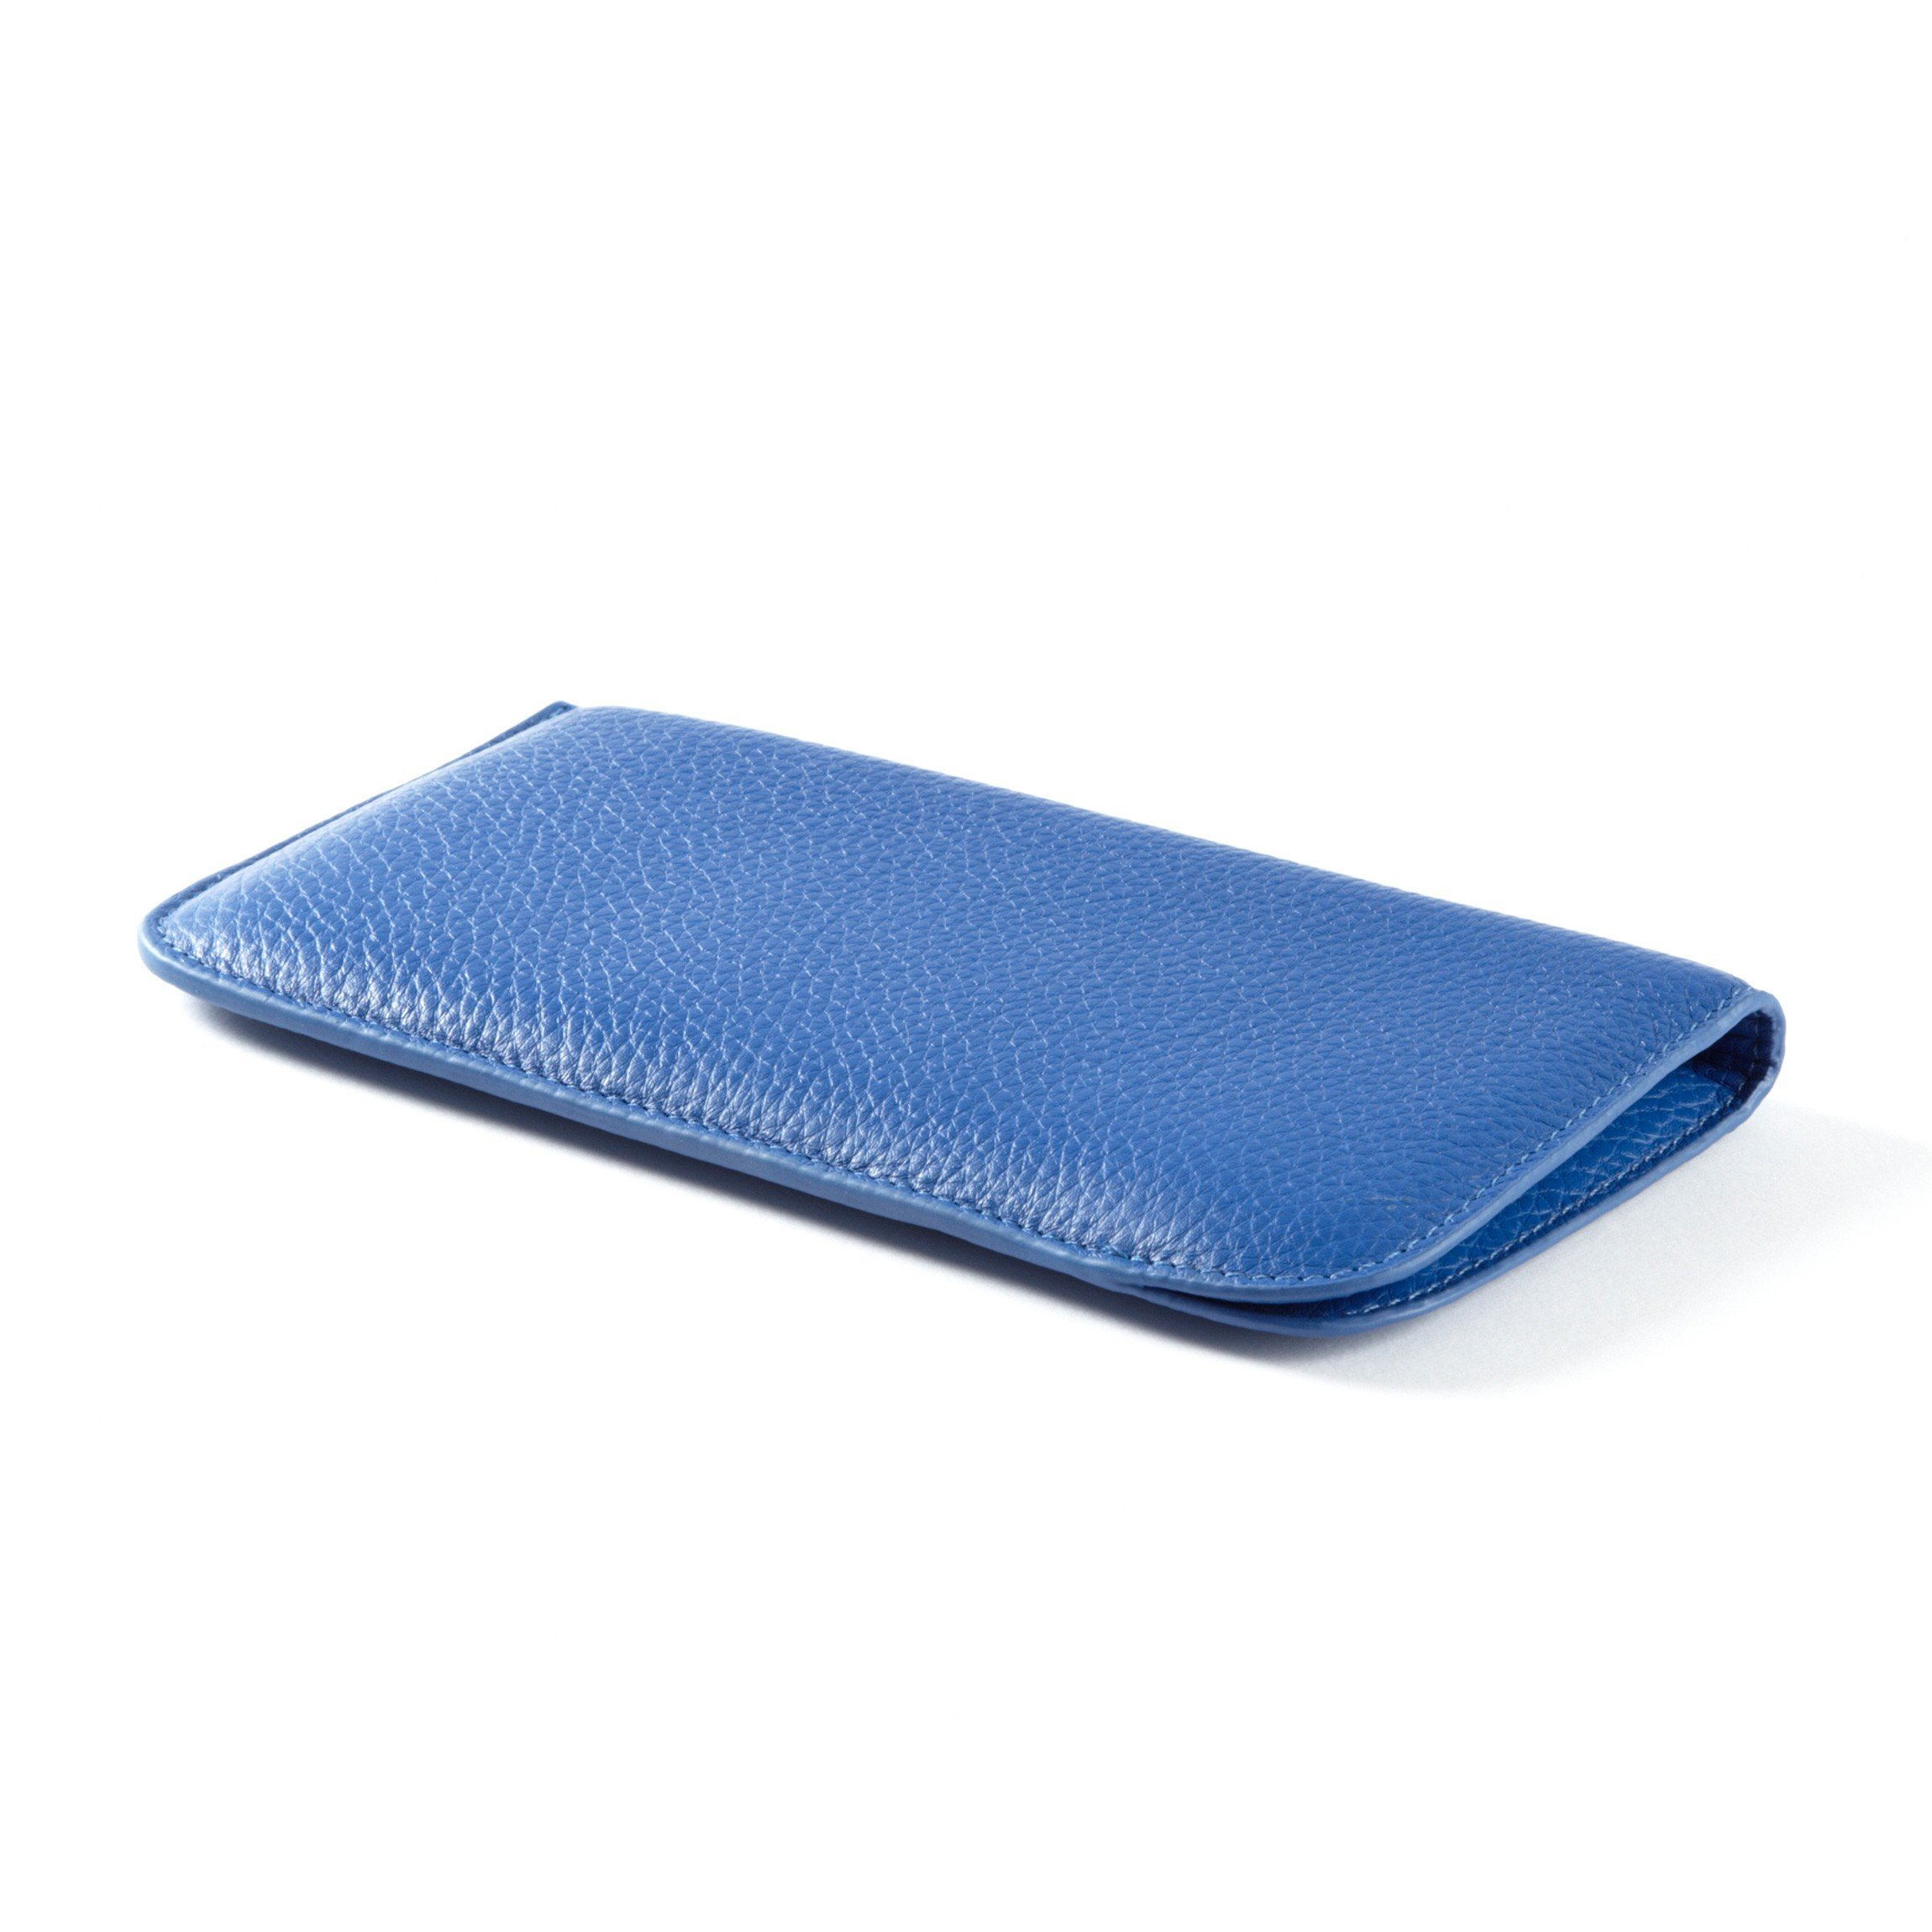 Soft Eyeglass Case - Full Grain Leather - Cobalt (blue)